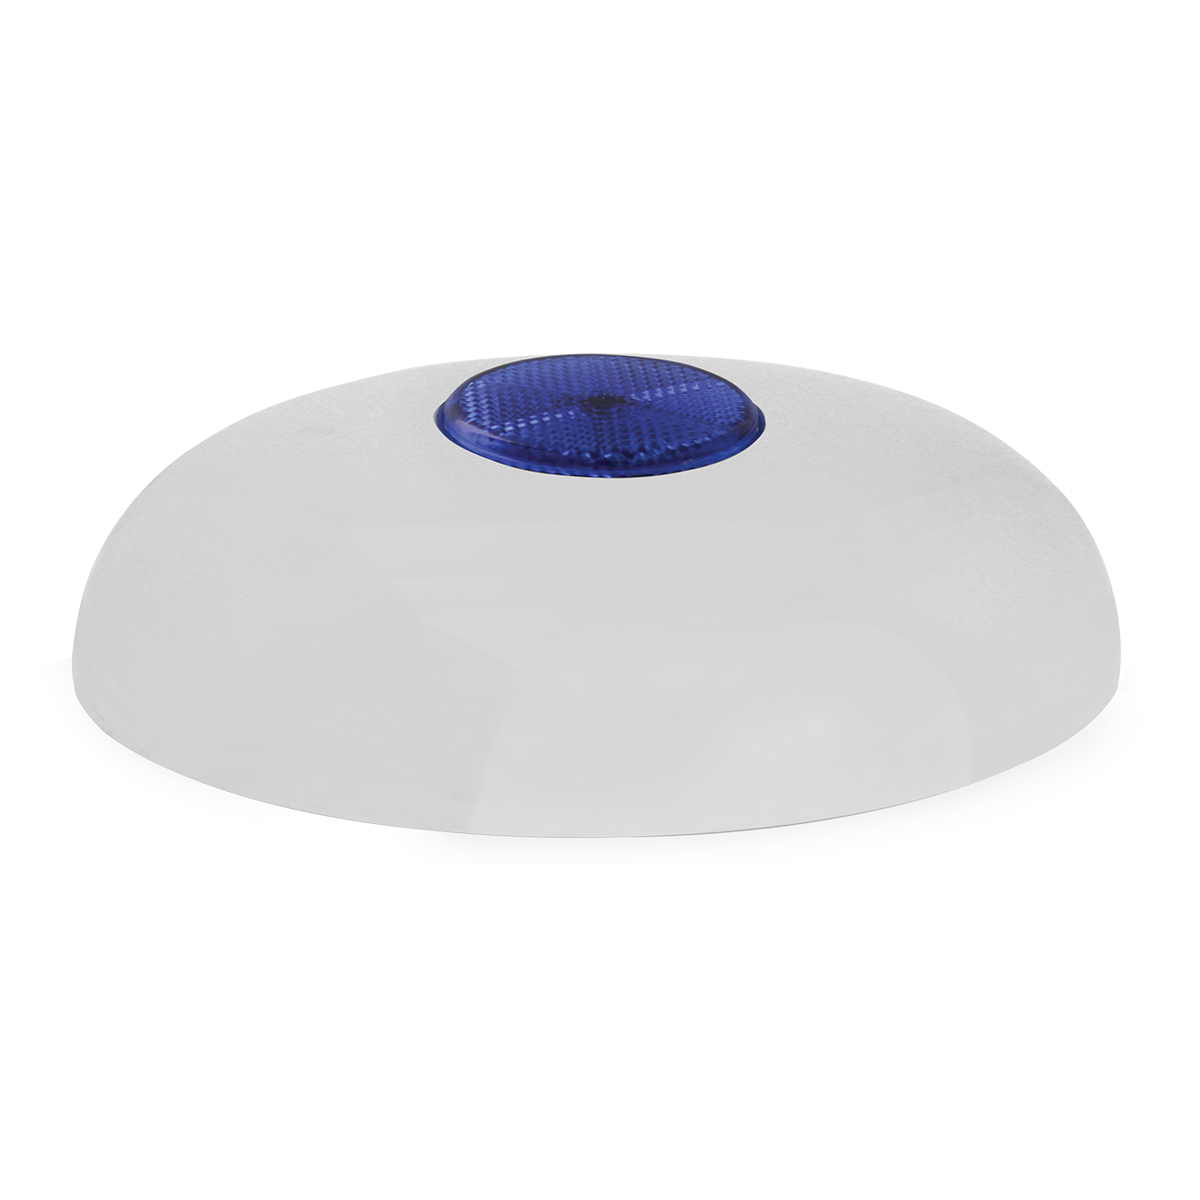 Chrome Plated Steel Horn Cover with Blue Reflector on Center